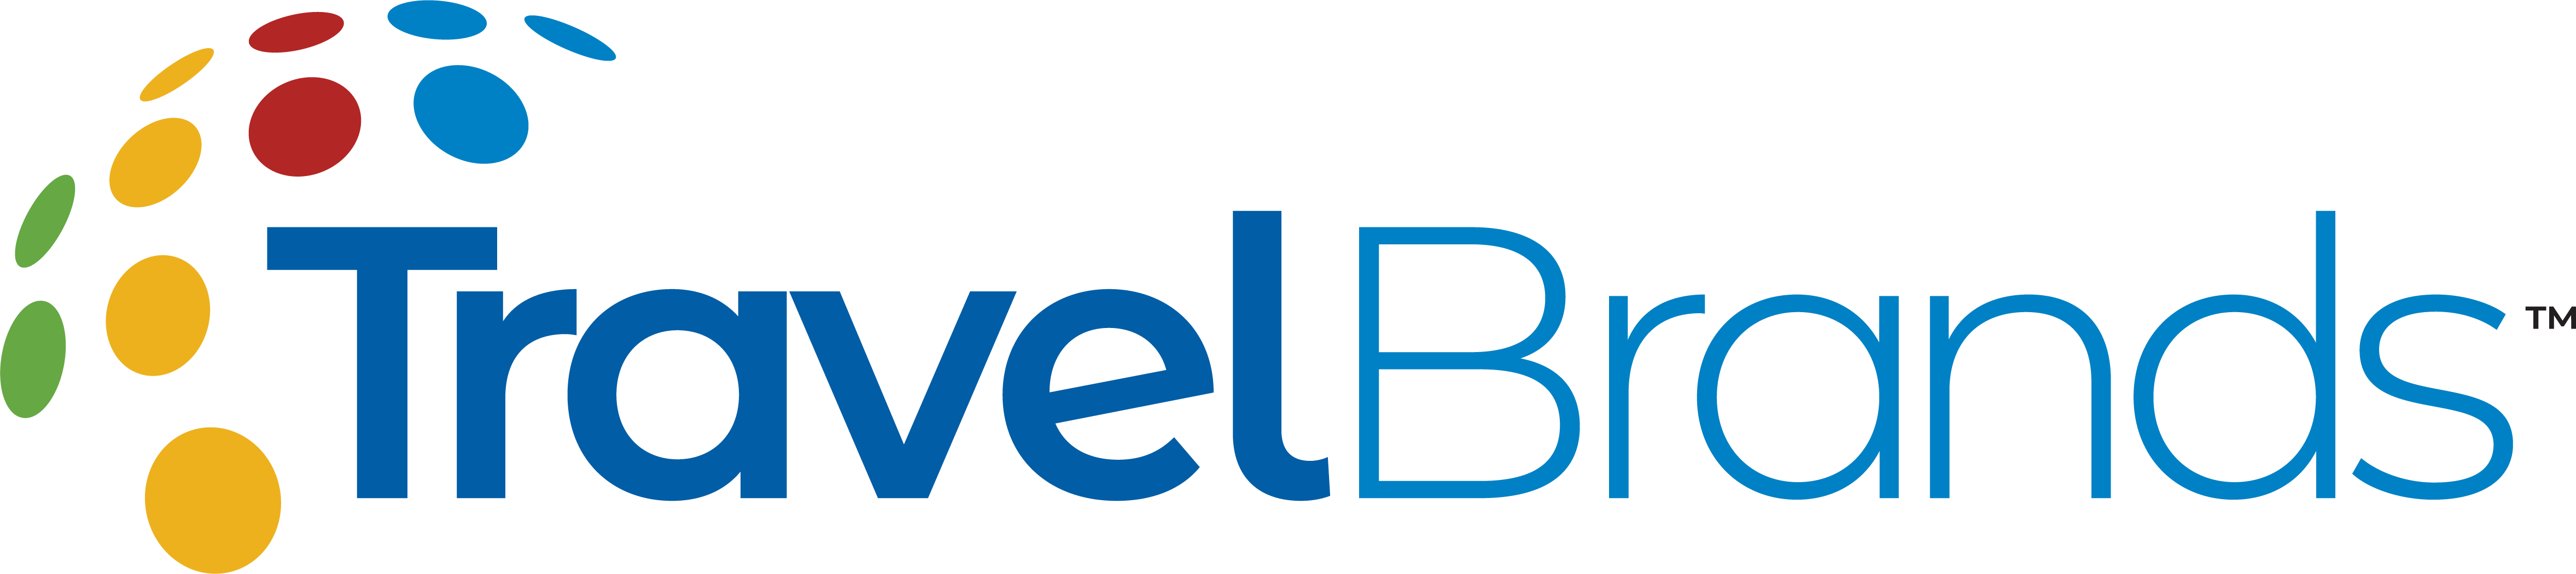 TravelBrands logo